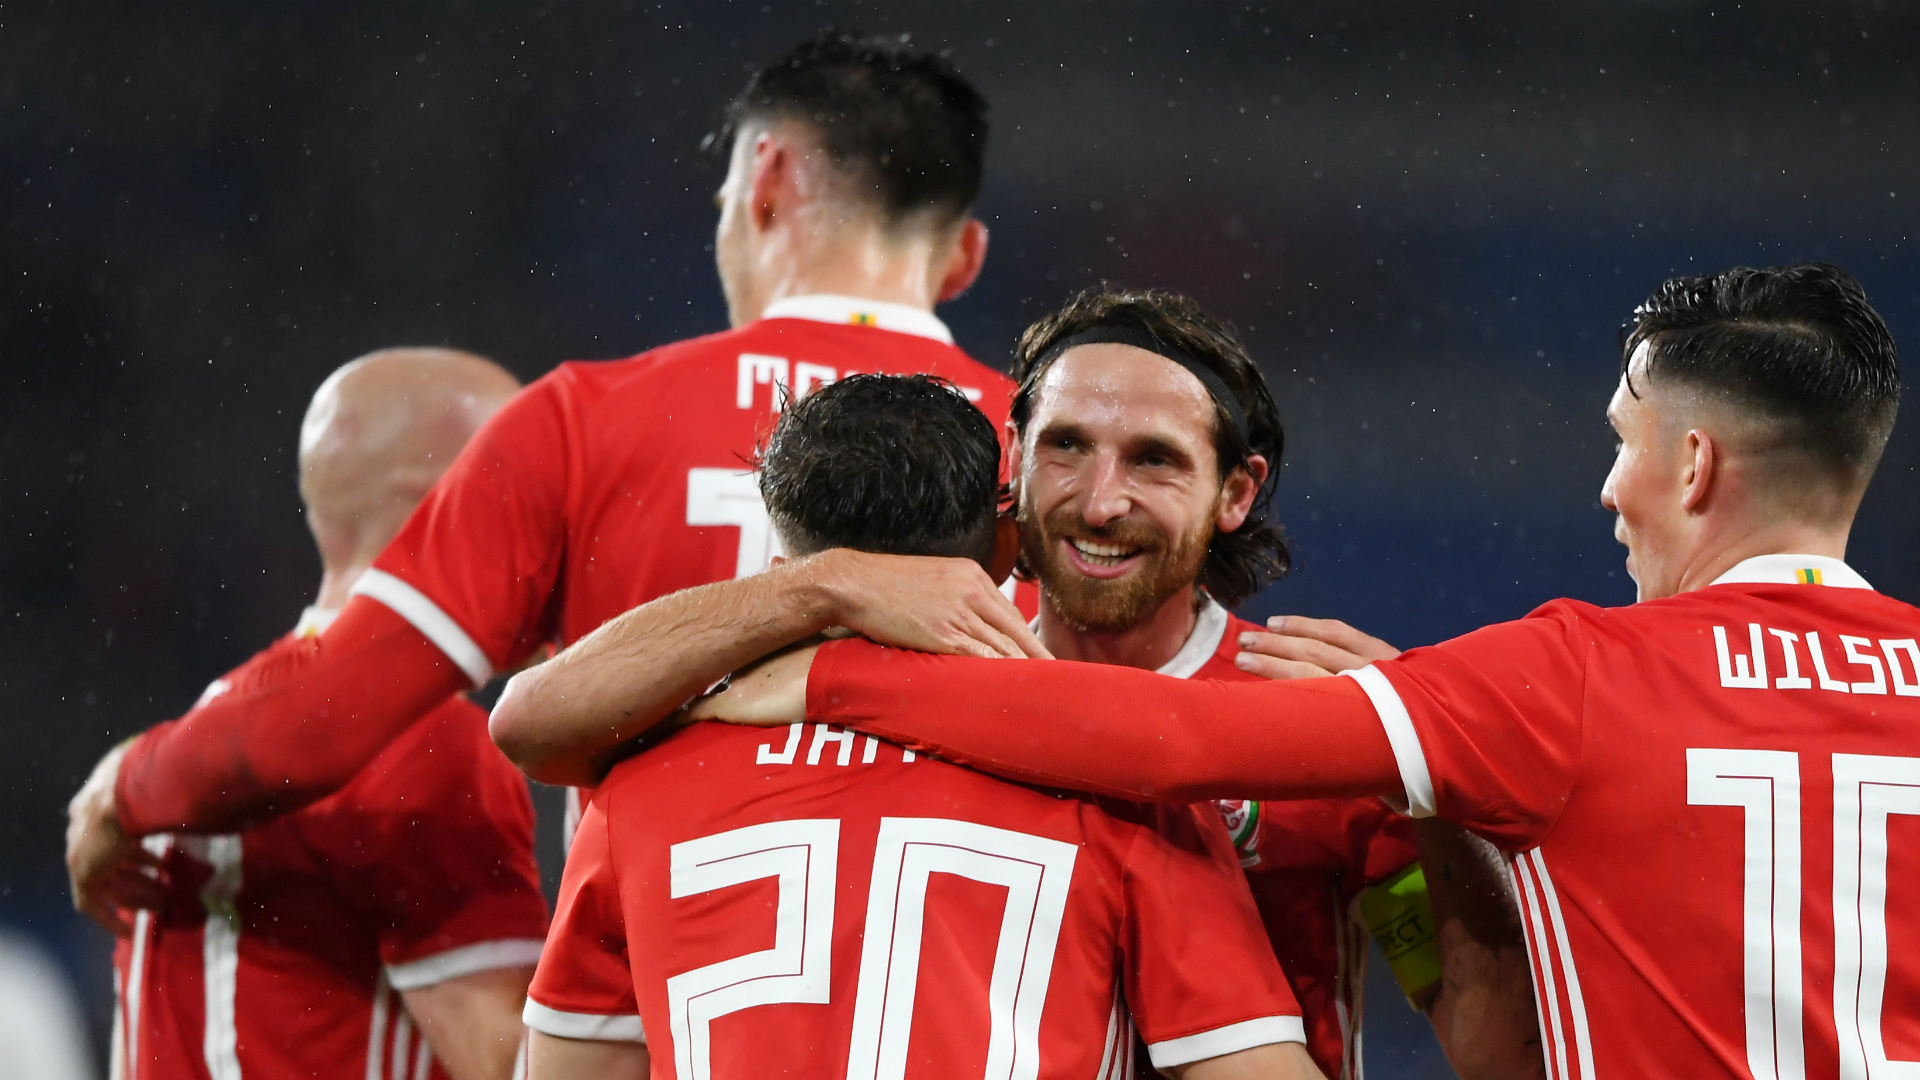 Wales 1-0 Belarus: James continues impressive form with fine winner